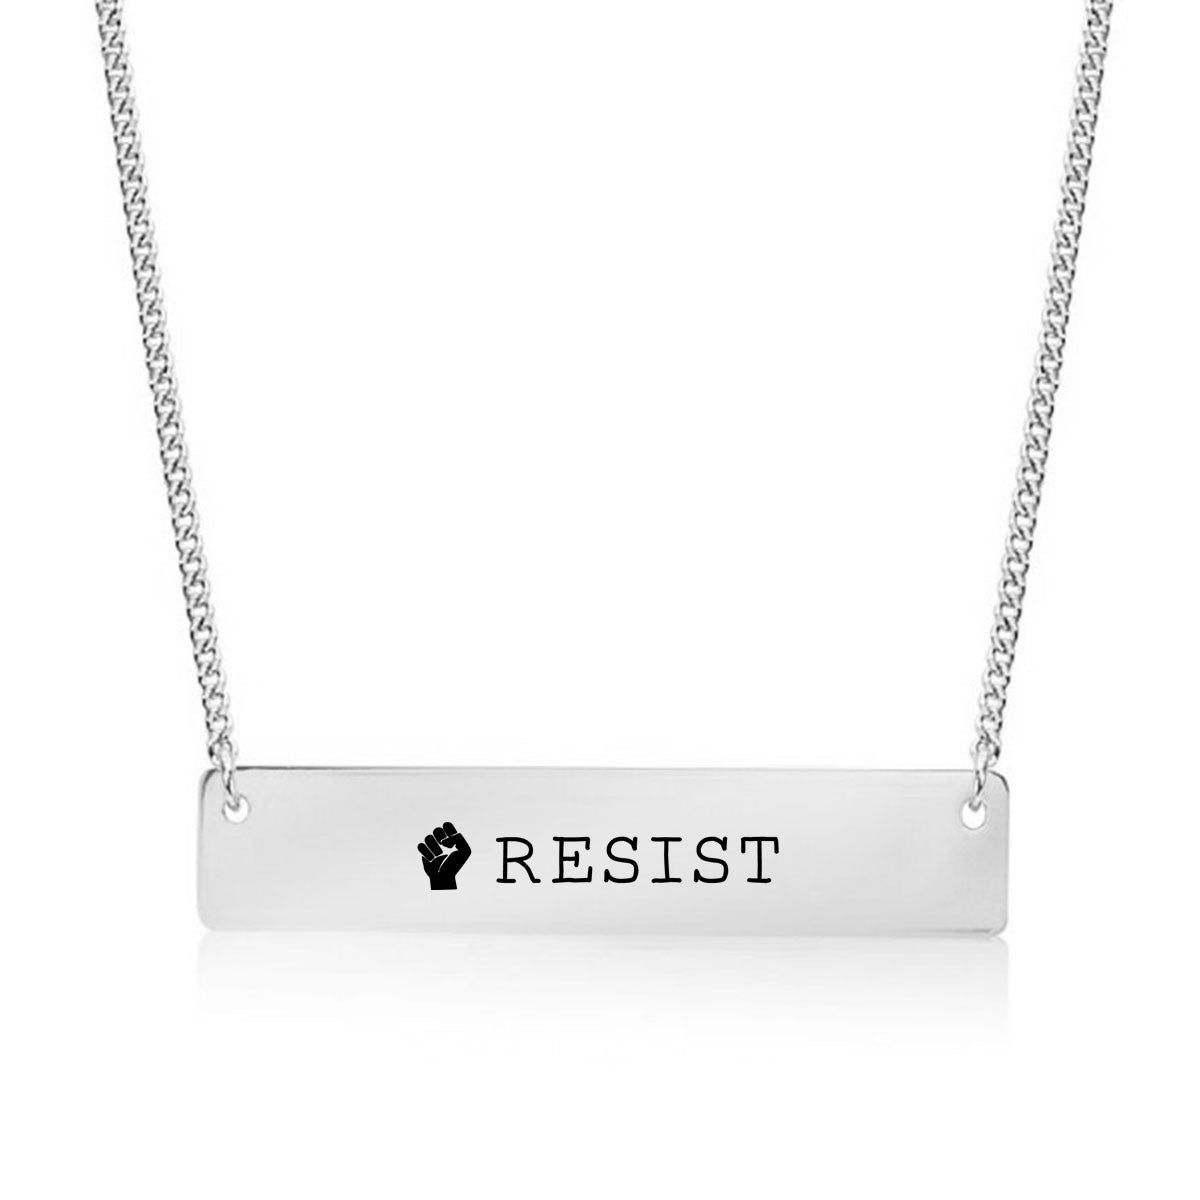 Resist Gold / Silver Bar Necklace - pipercleo.com